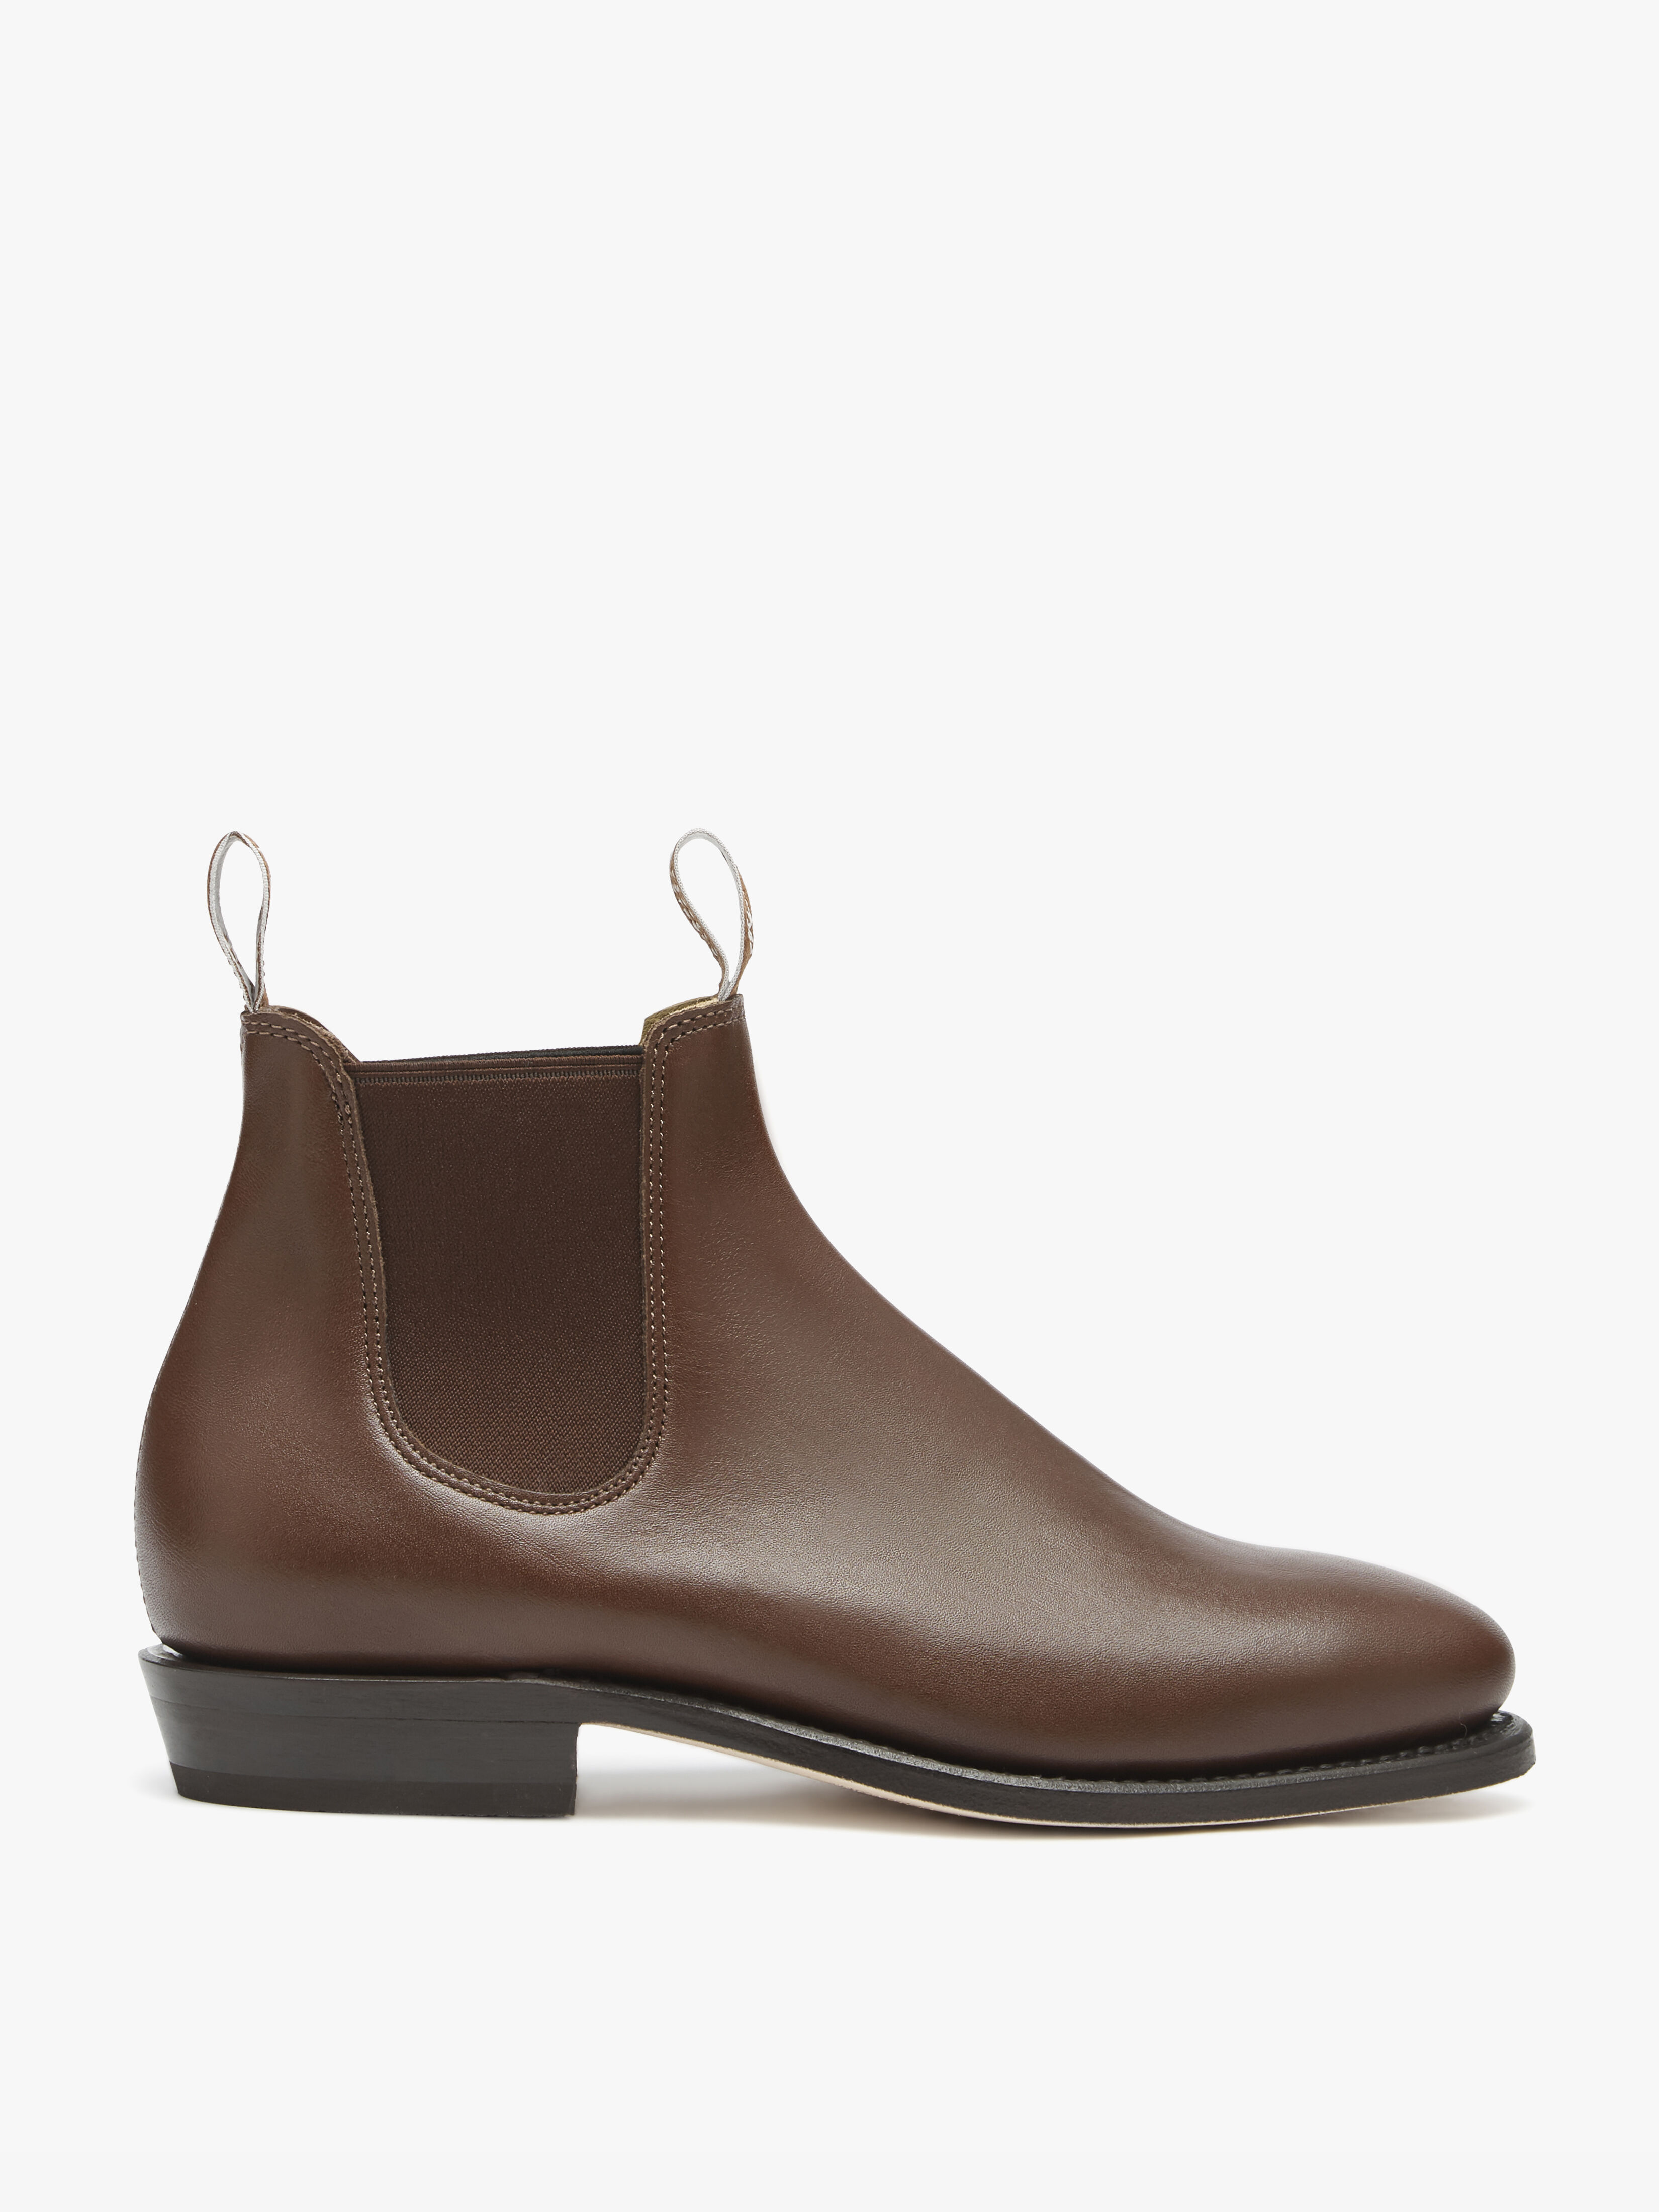 Adelaide Boot Yearling Leather